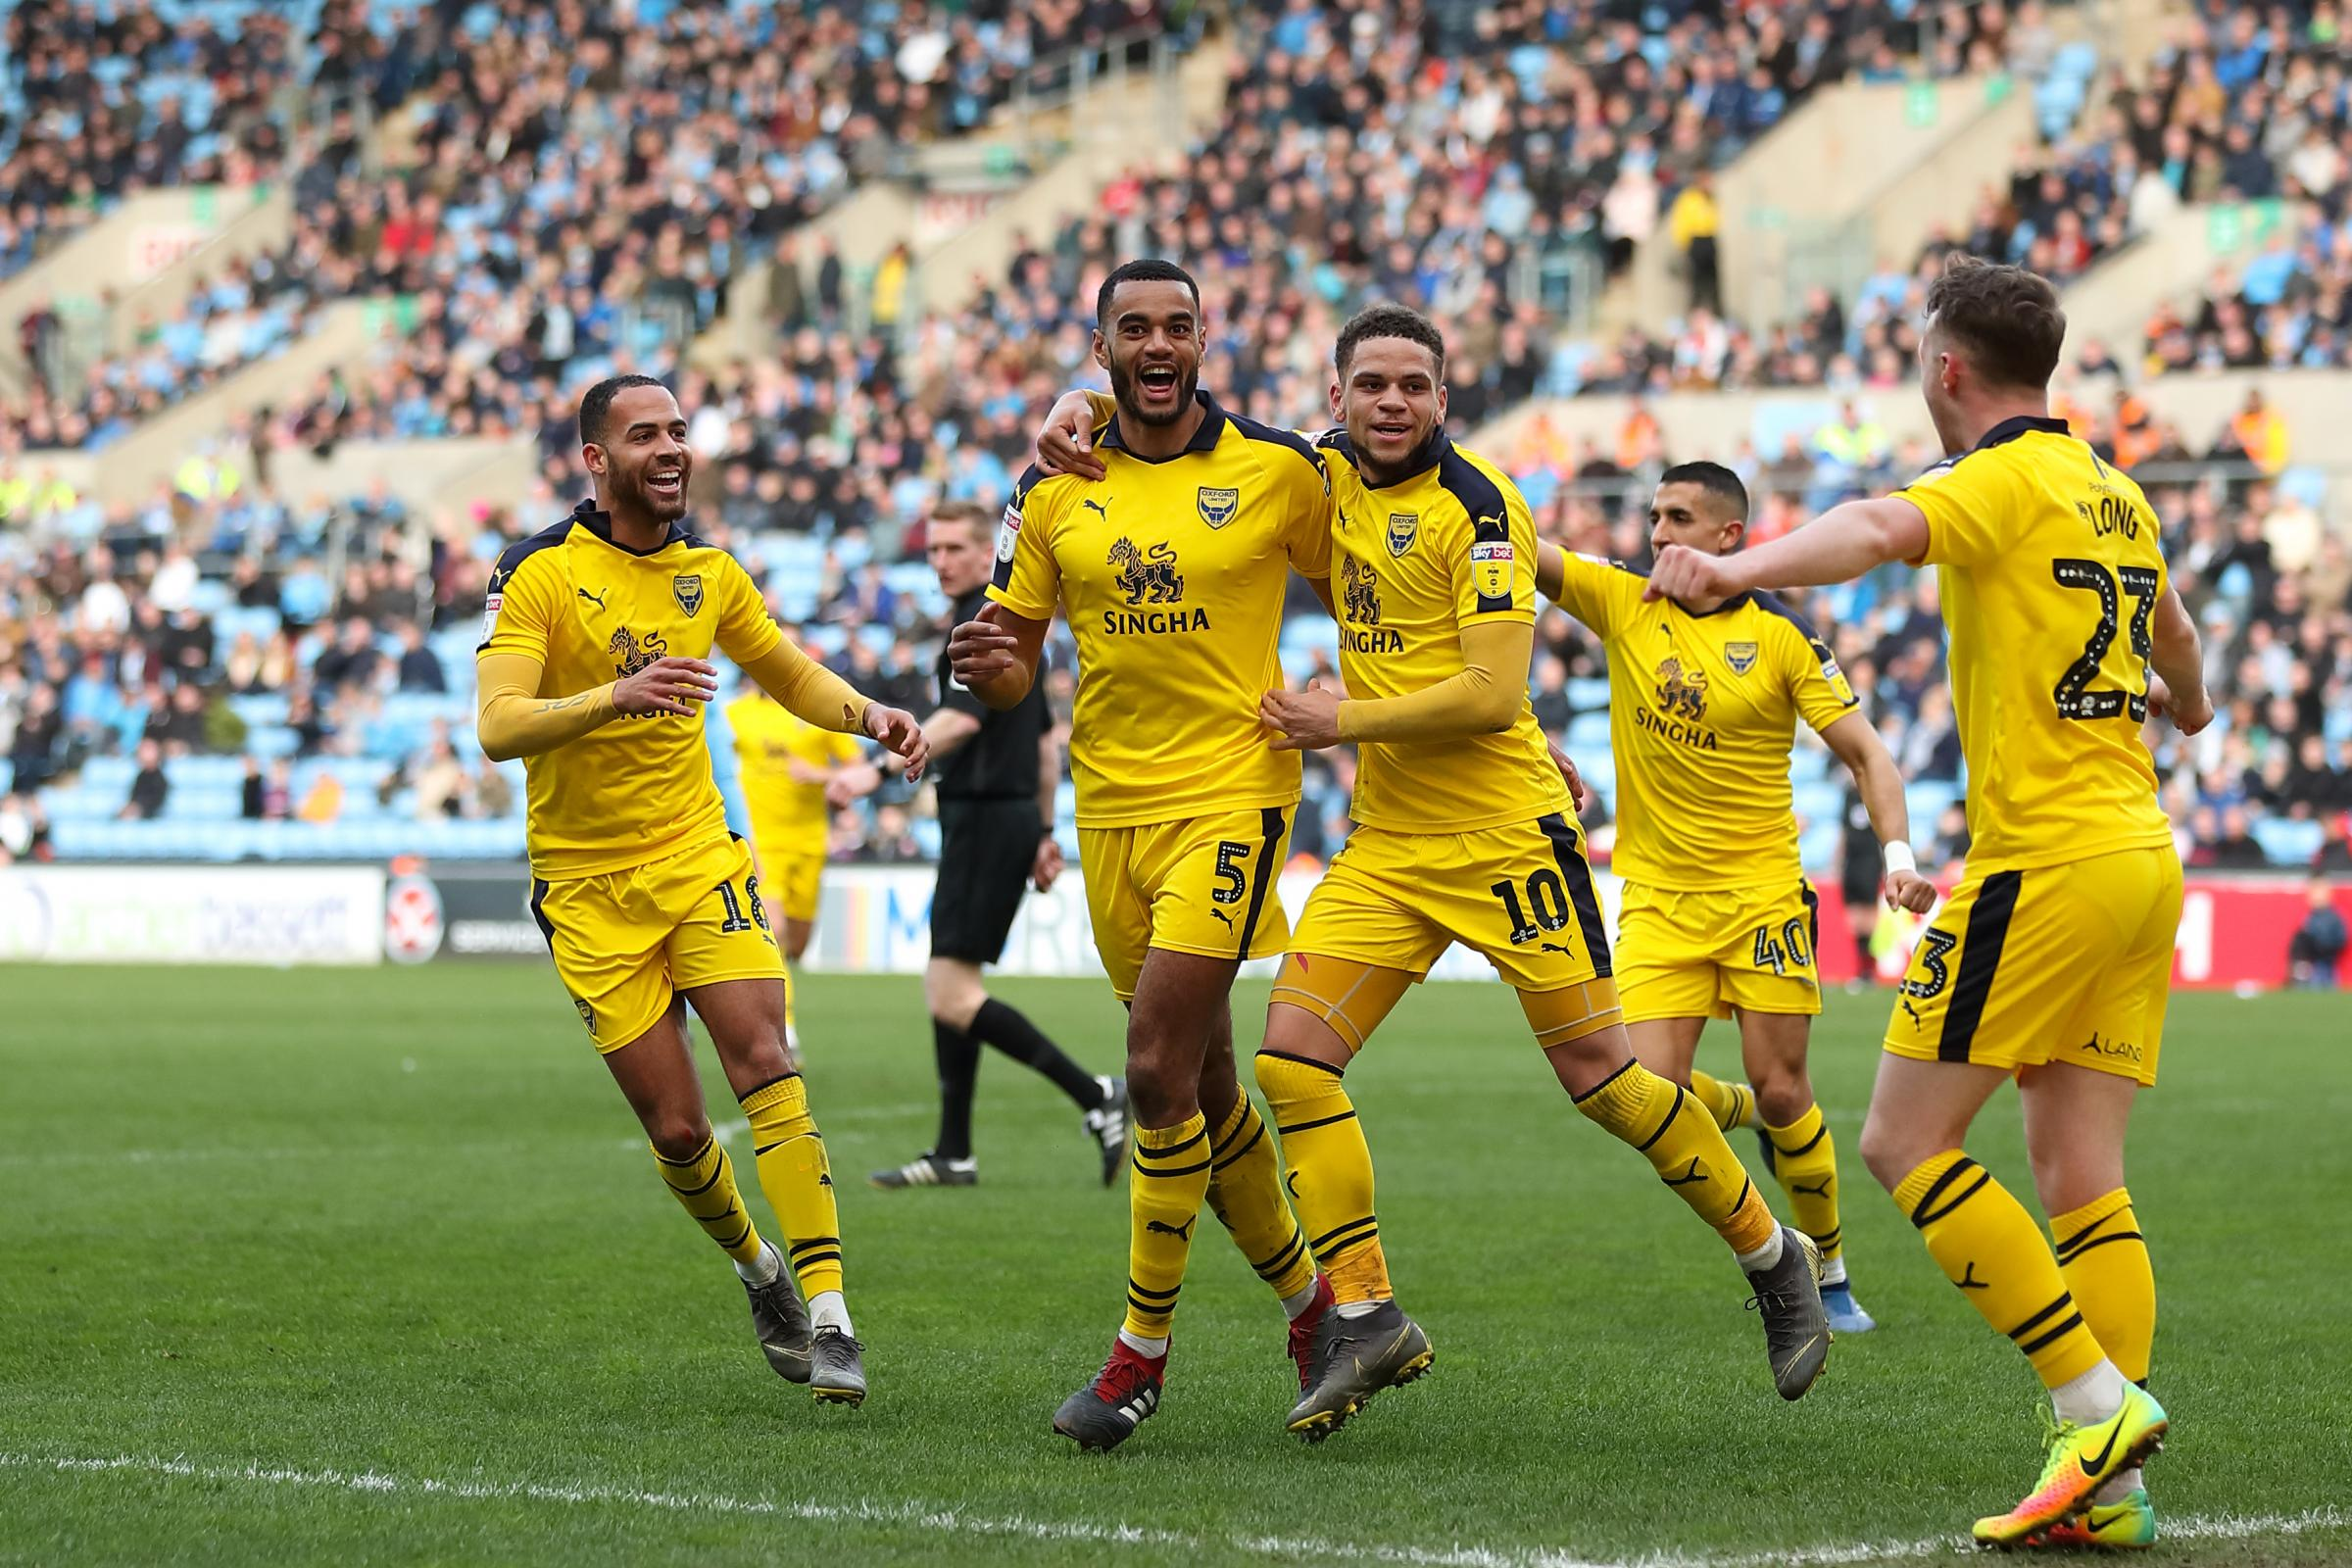 Curtis Nelson celebrates after scoring what turned out to be the only goal of the game in Oxford United's victory at Coventry City on Saturday        Picture: James Williamson